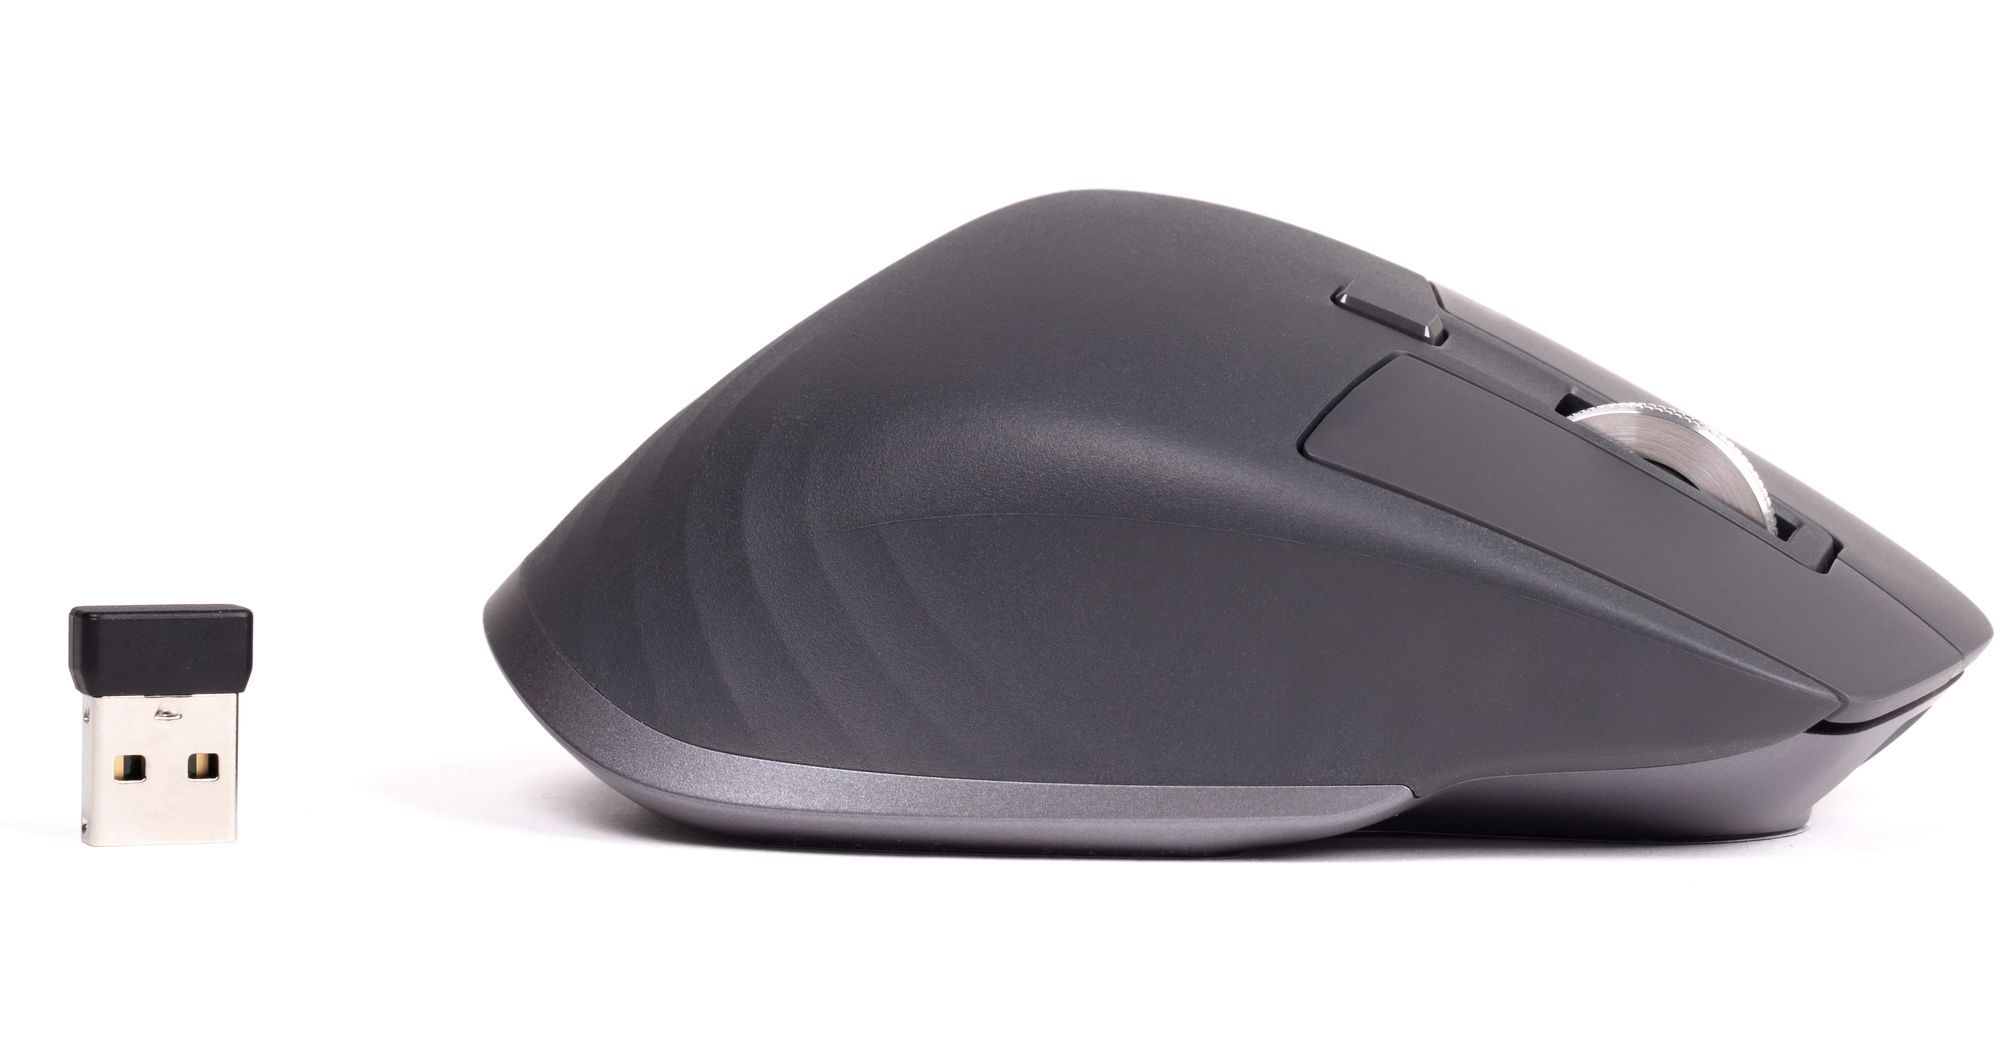 Image of a USB wireless mouse